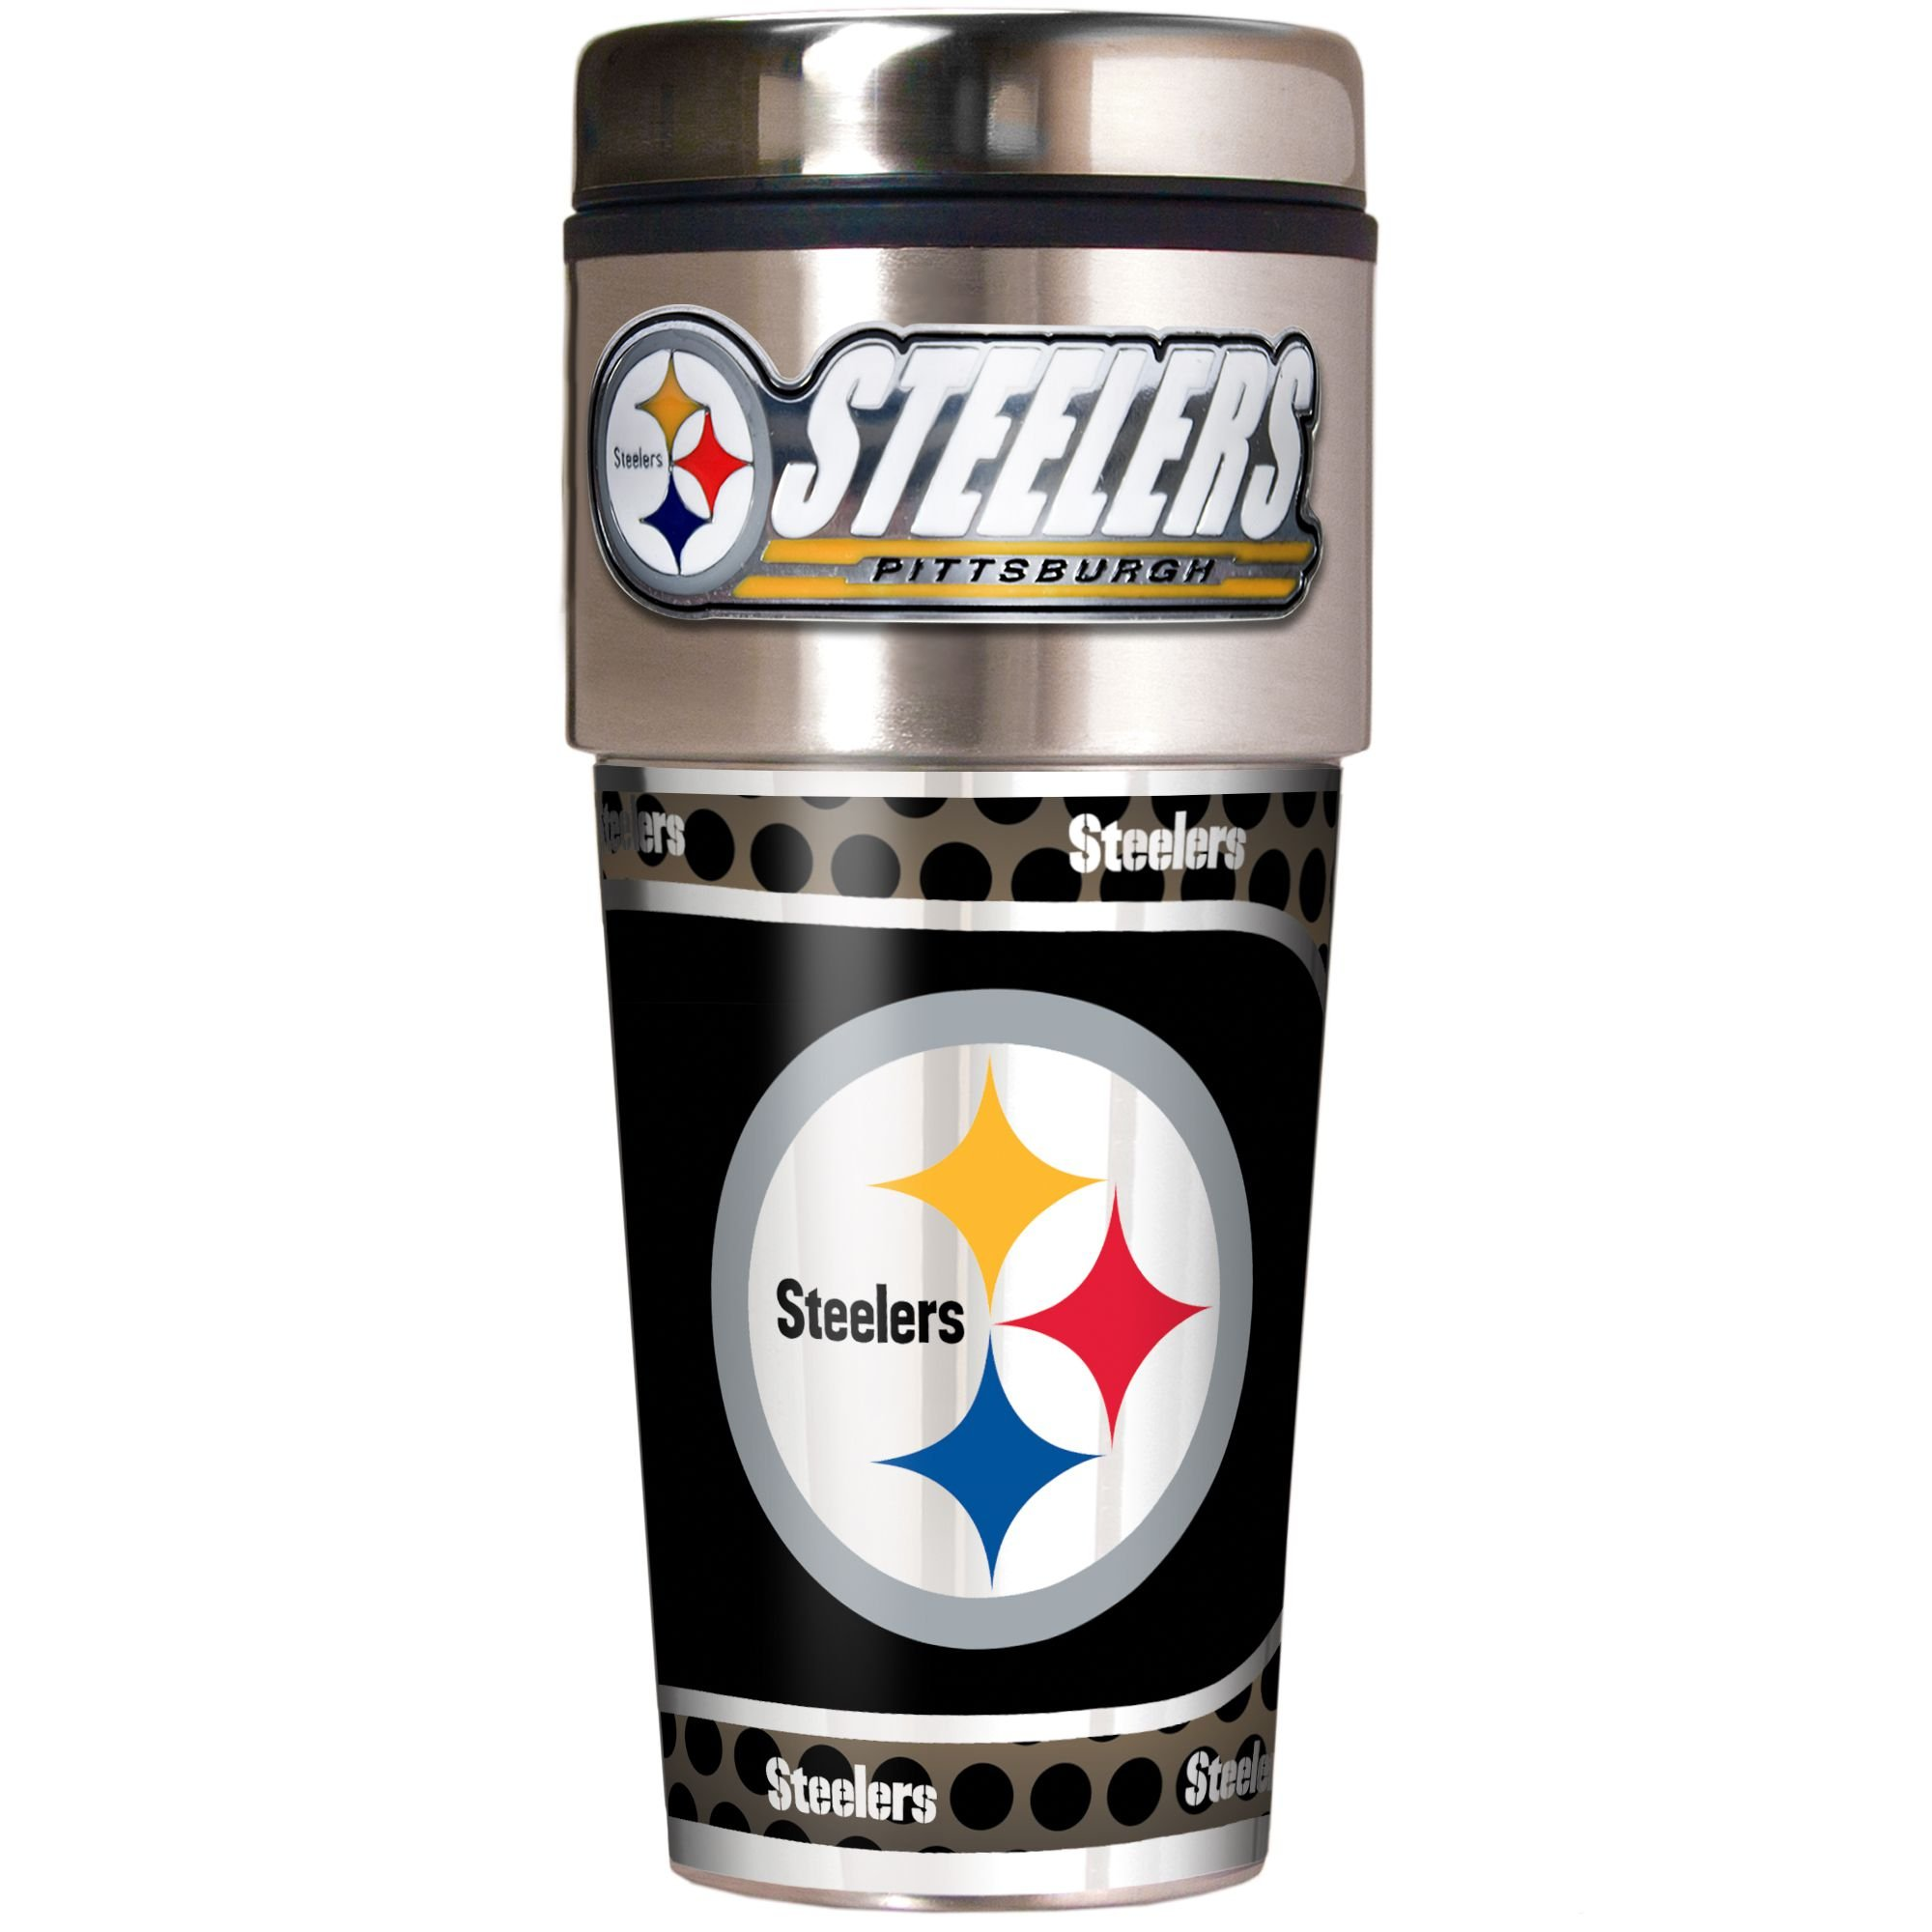 NFL Pittsburgh Steelers Metallic Travel Tumbler, Stainless Steel and Black Vinyl, 16-Ounce by Great American Products